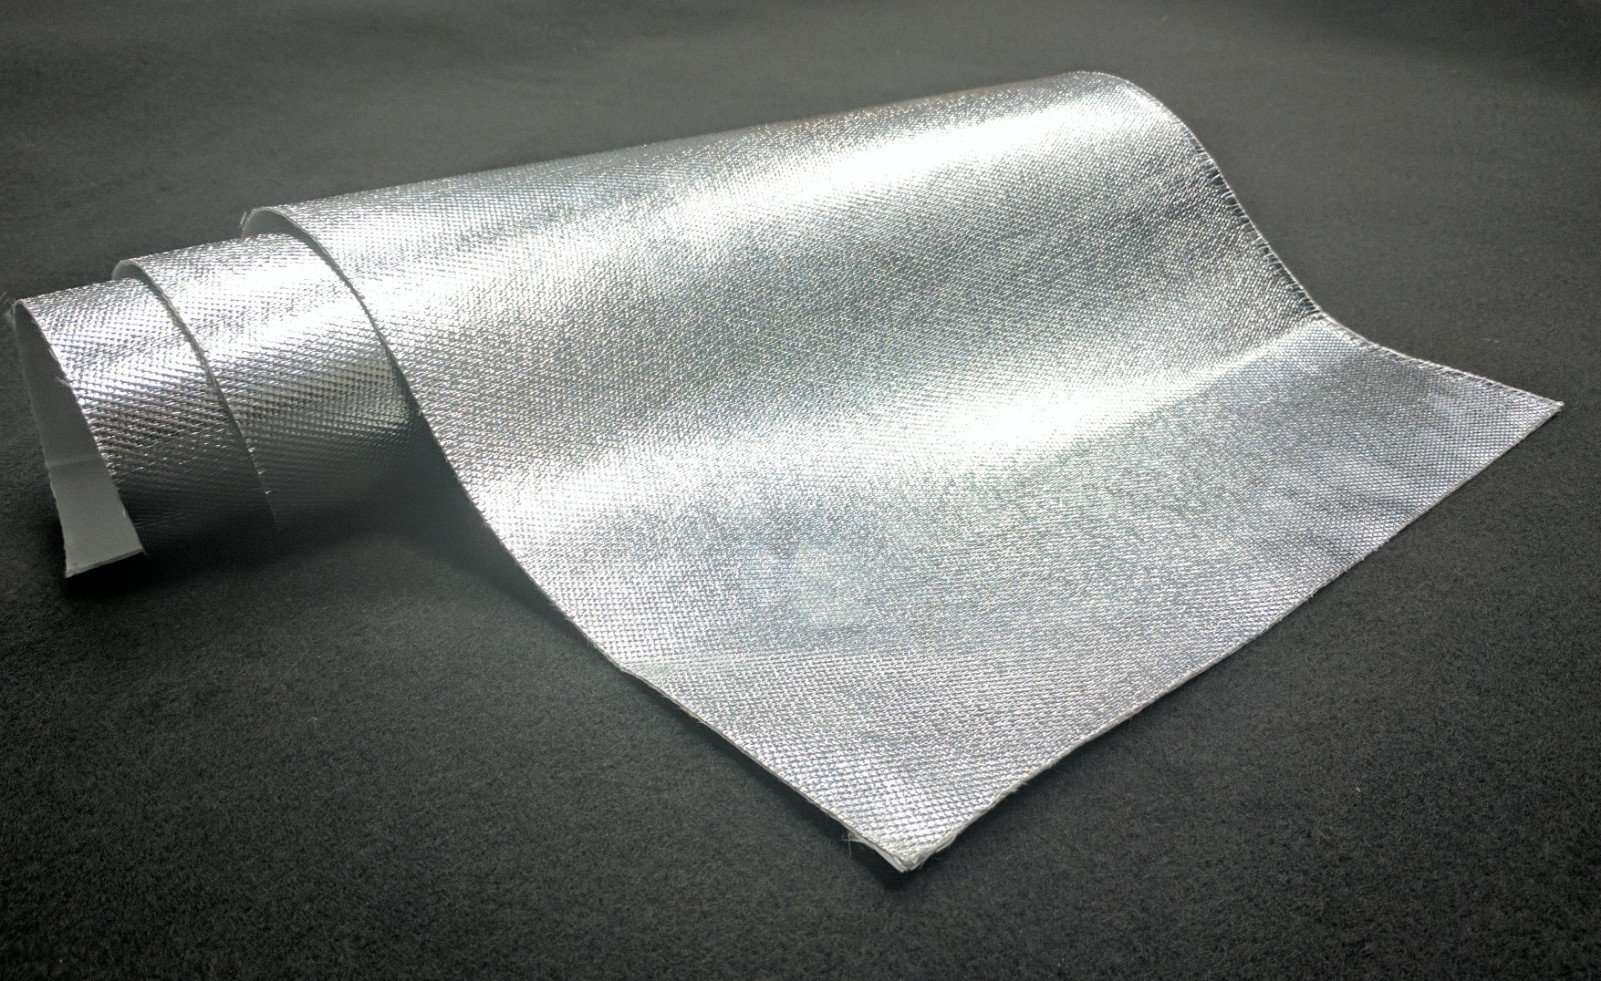 Aluminum Heat Shield Protection with Fiberglass and Self-Adhesive Backing Heat Barrier 15x48 in (5 Sq Feet)